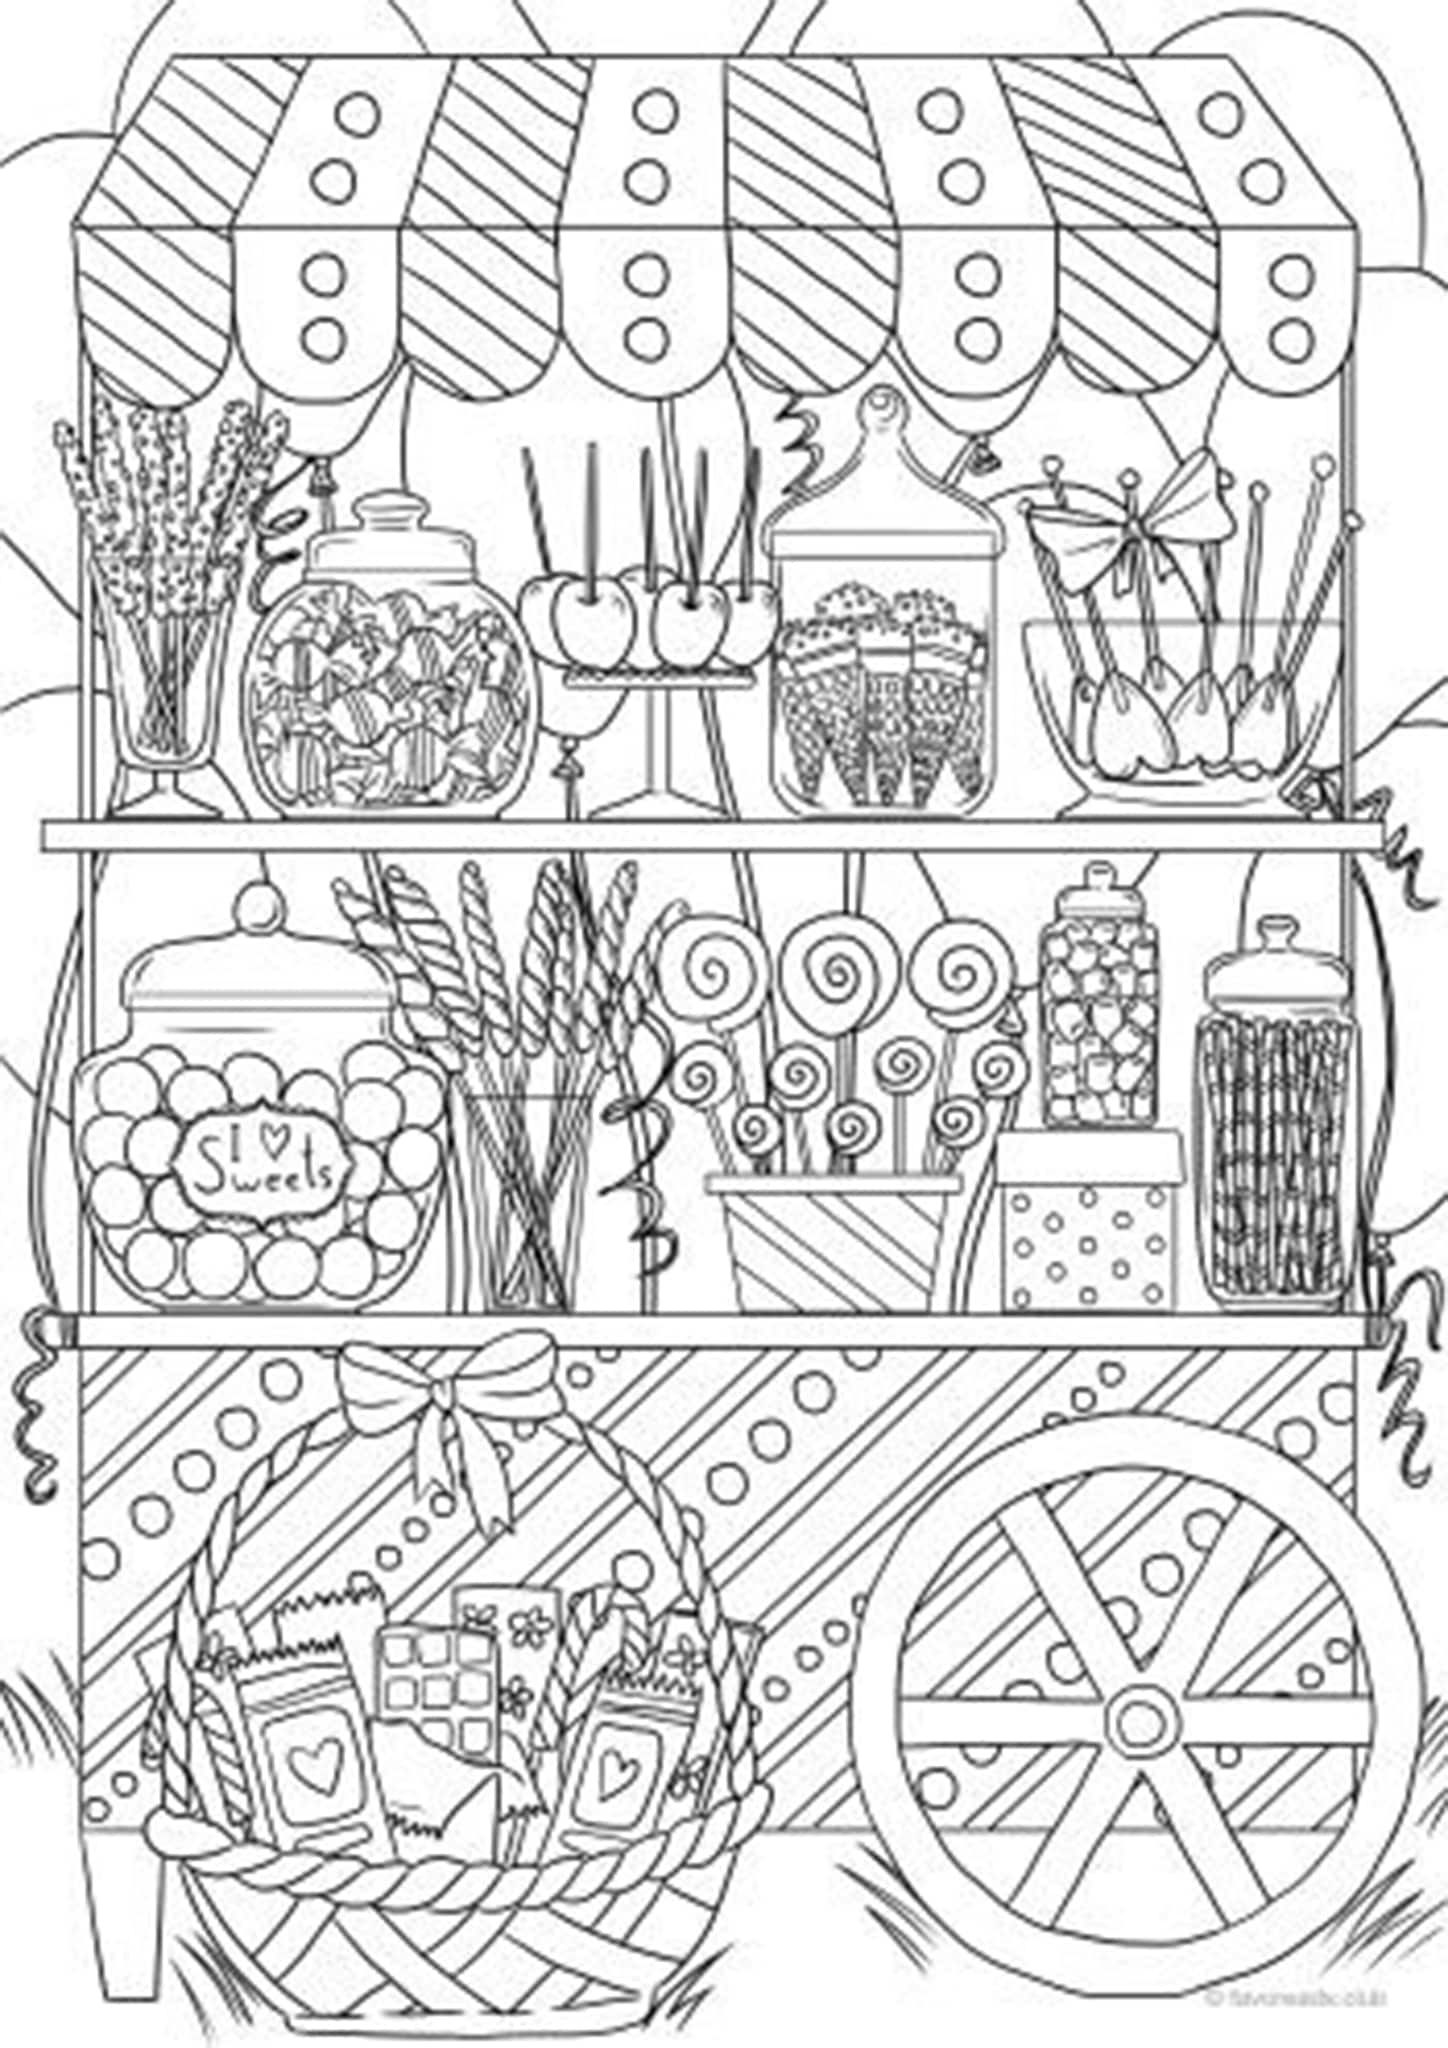 Free Easy To Print Candy Coloring Pages Free Coloring Pages Candy Coloring Pages Coloring Pages